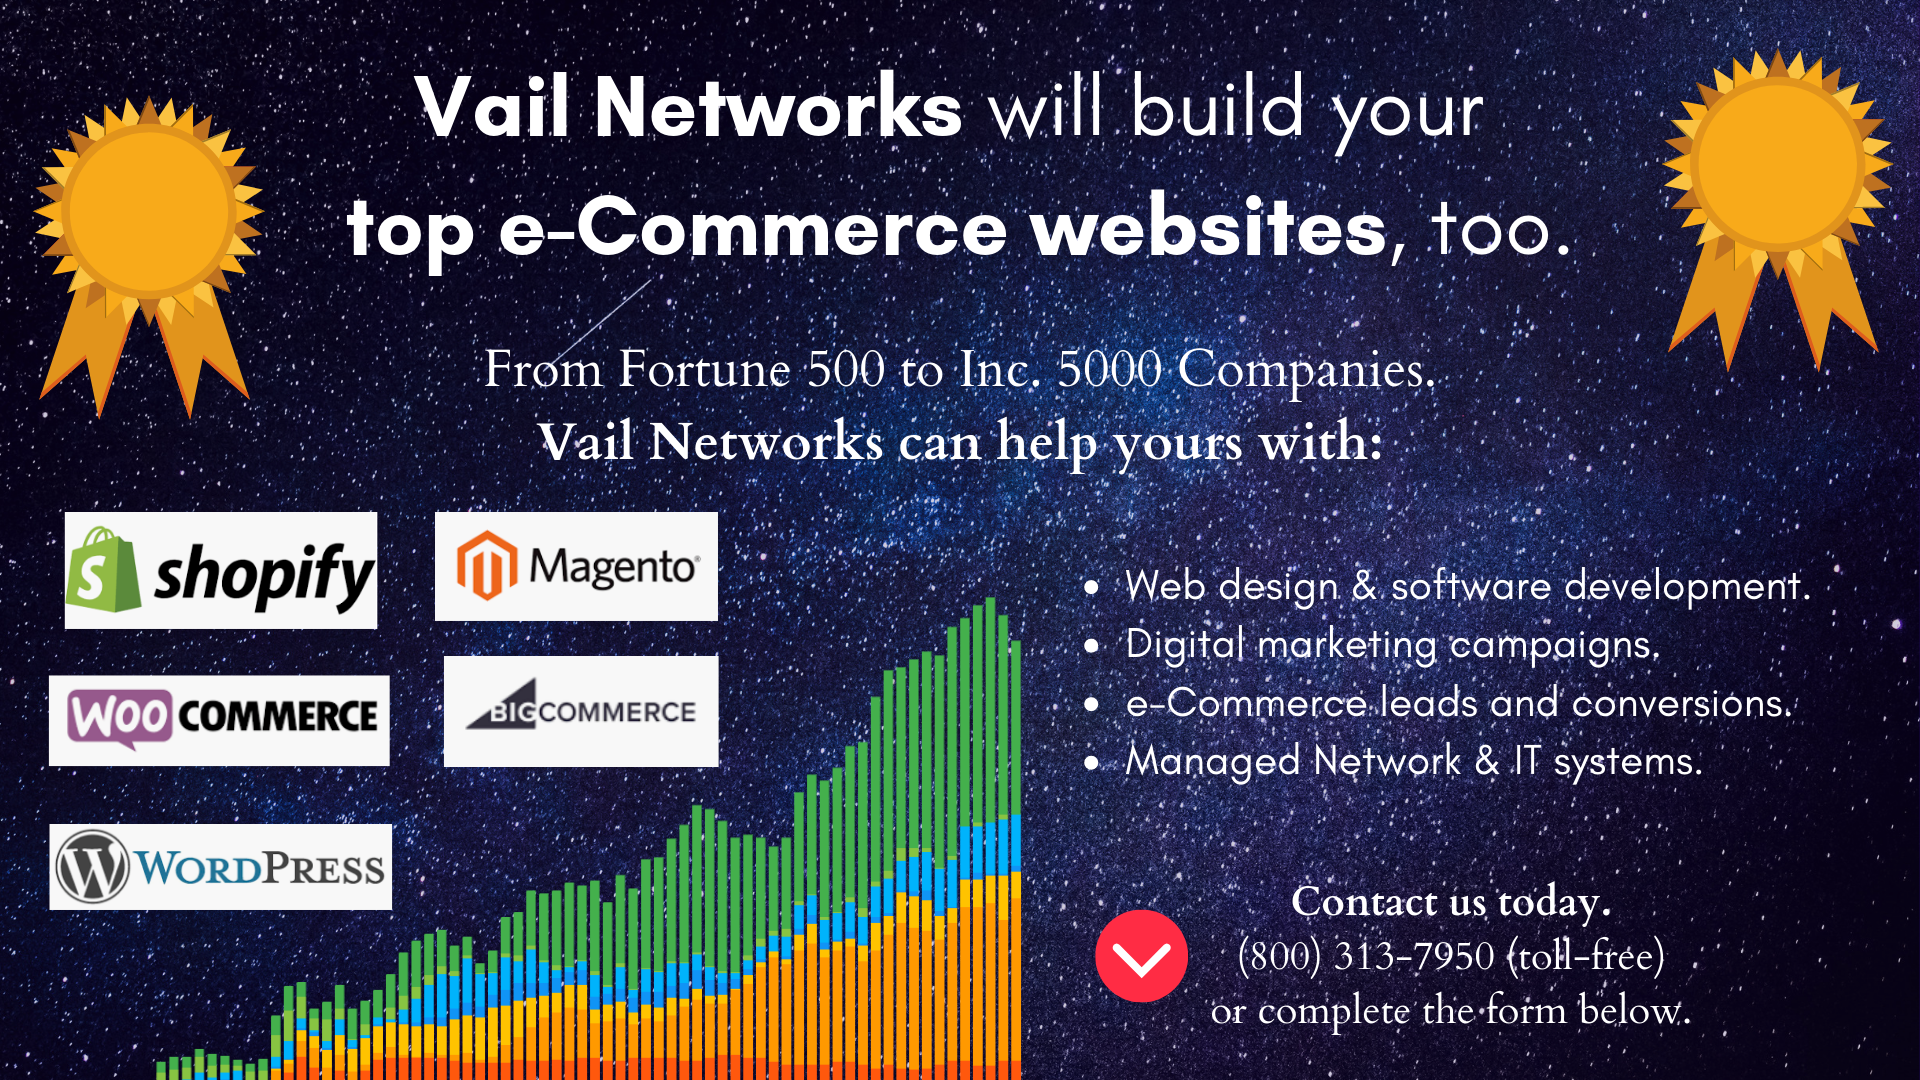 Company to help build, design, and launch e-commerce websites: vailnetworks.com